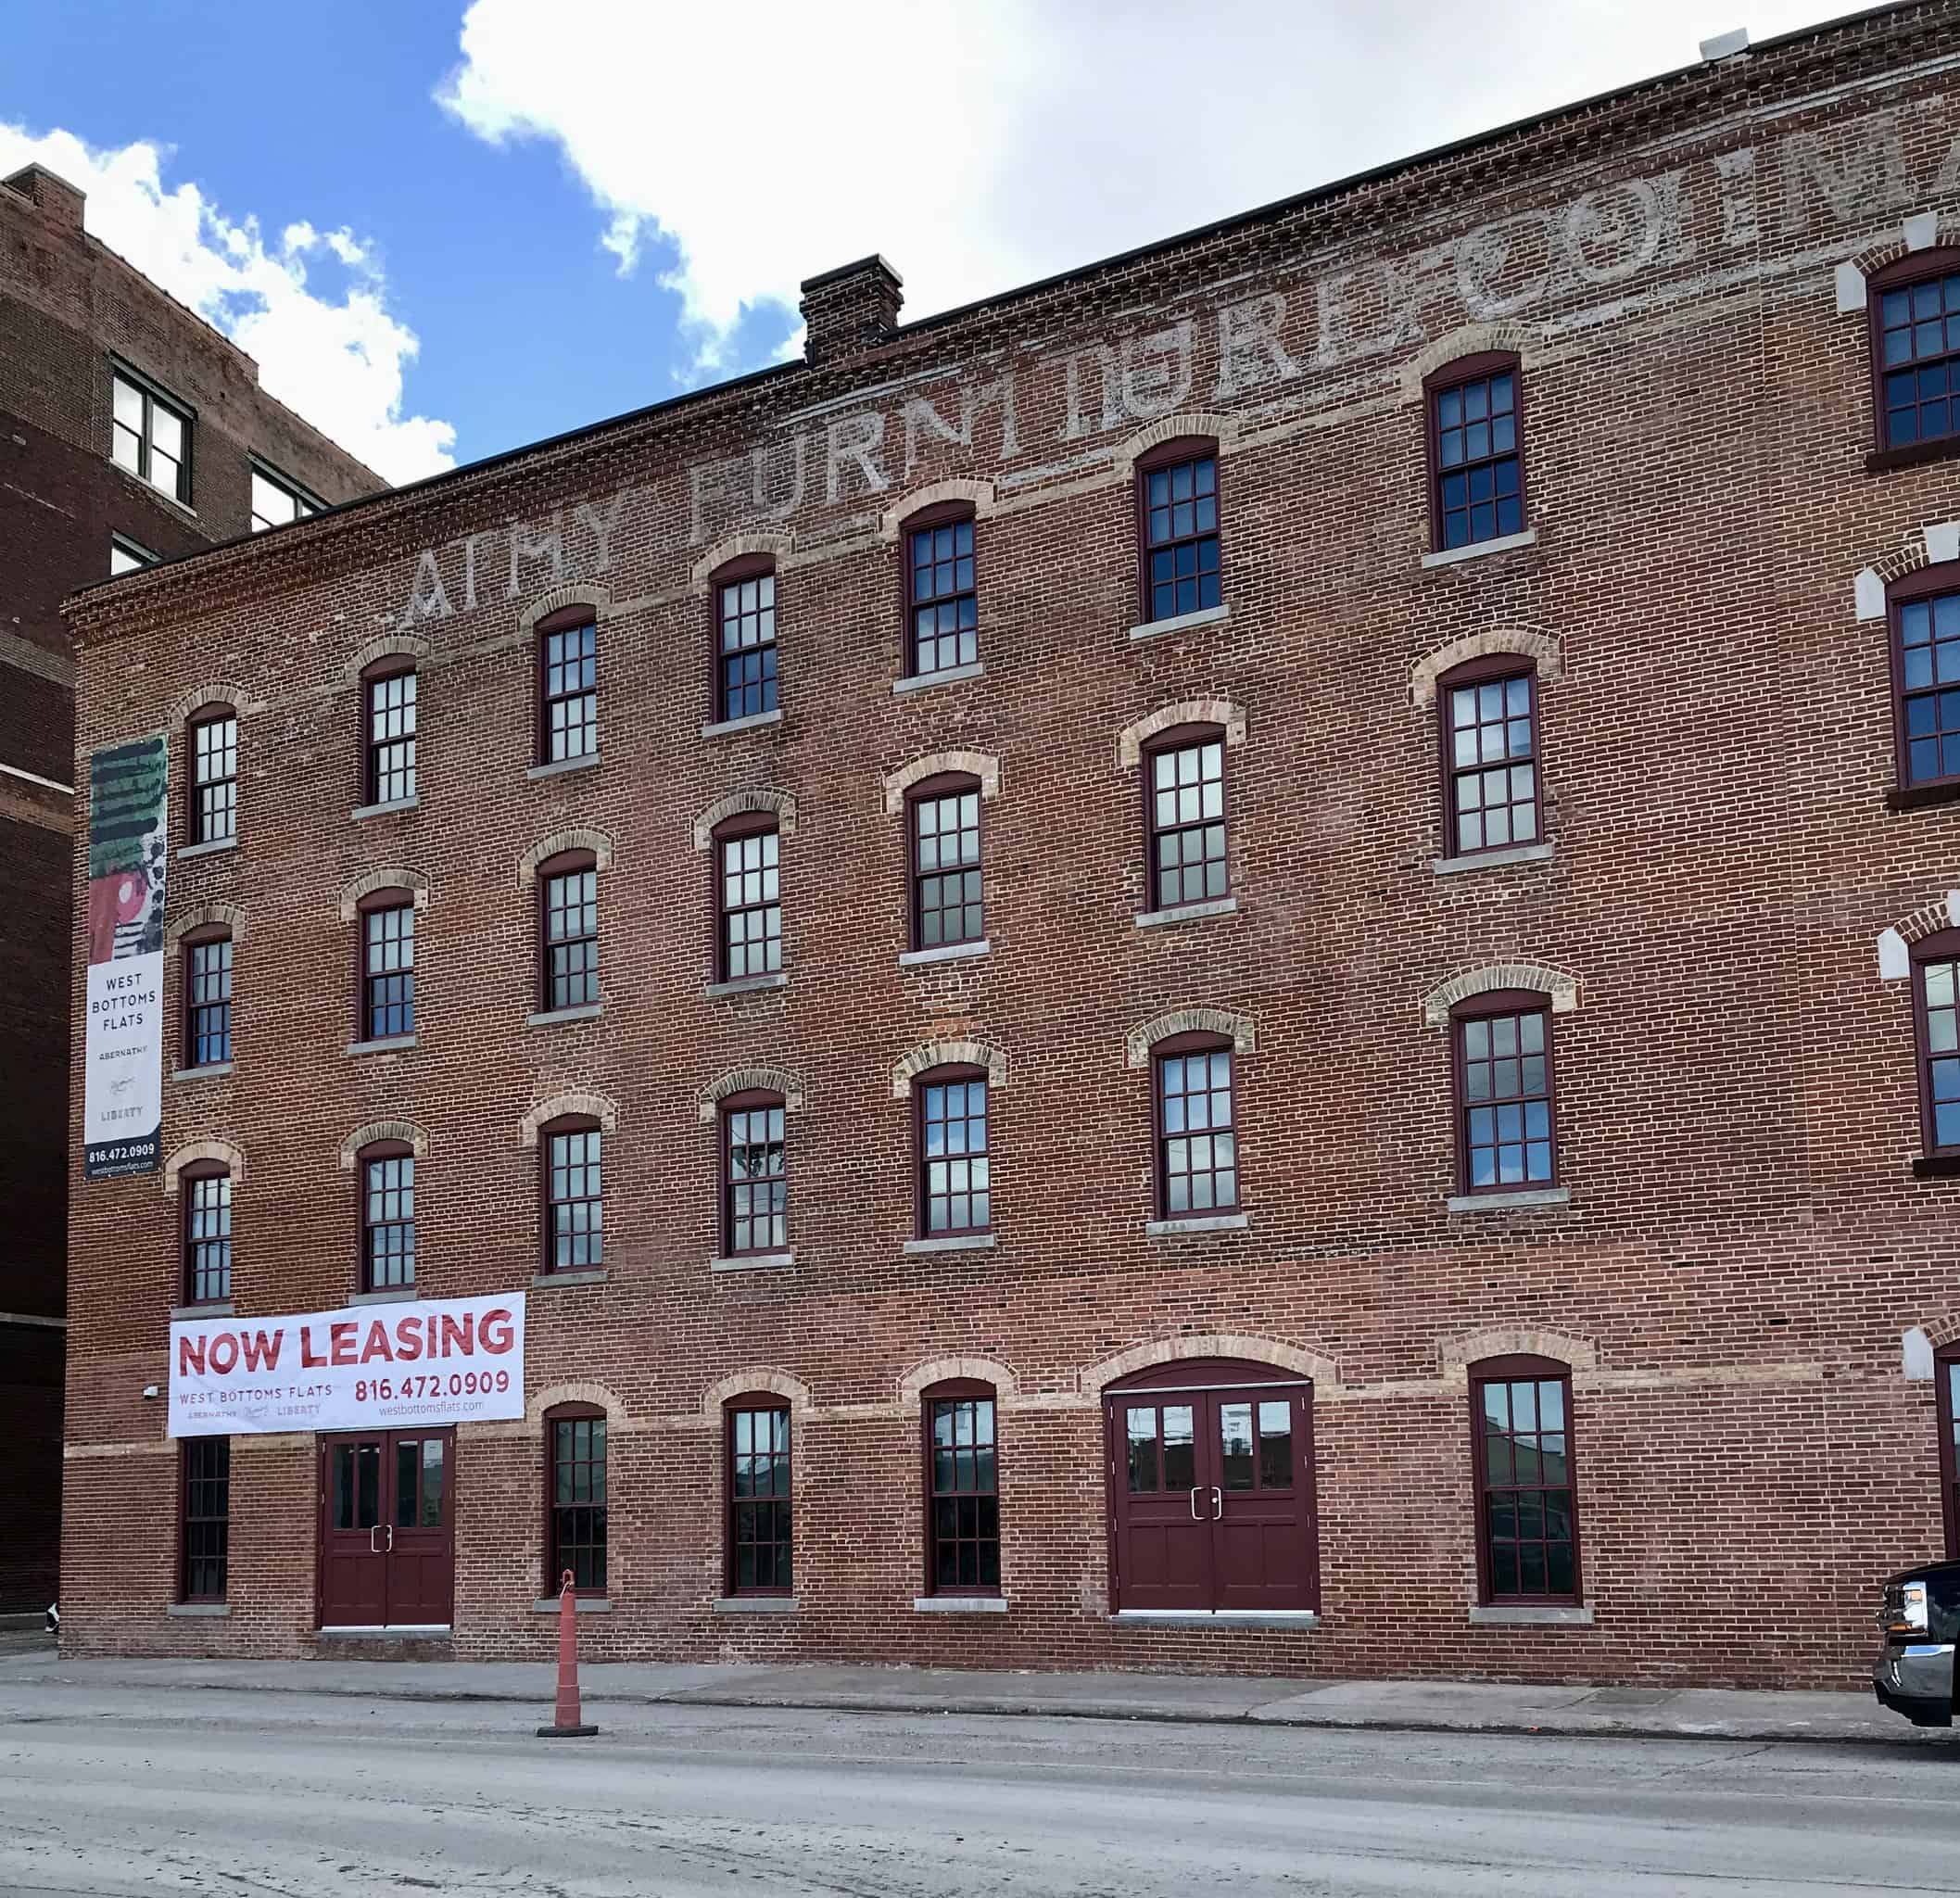 Once a dilapidated warehouse, Kansas City's historic Abernathy Building is now an upscale apartment building in a revived, formerly industrial district called the West Bottoms.